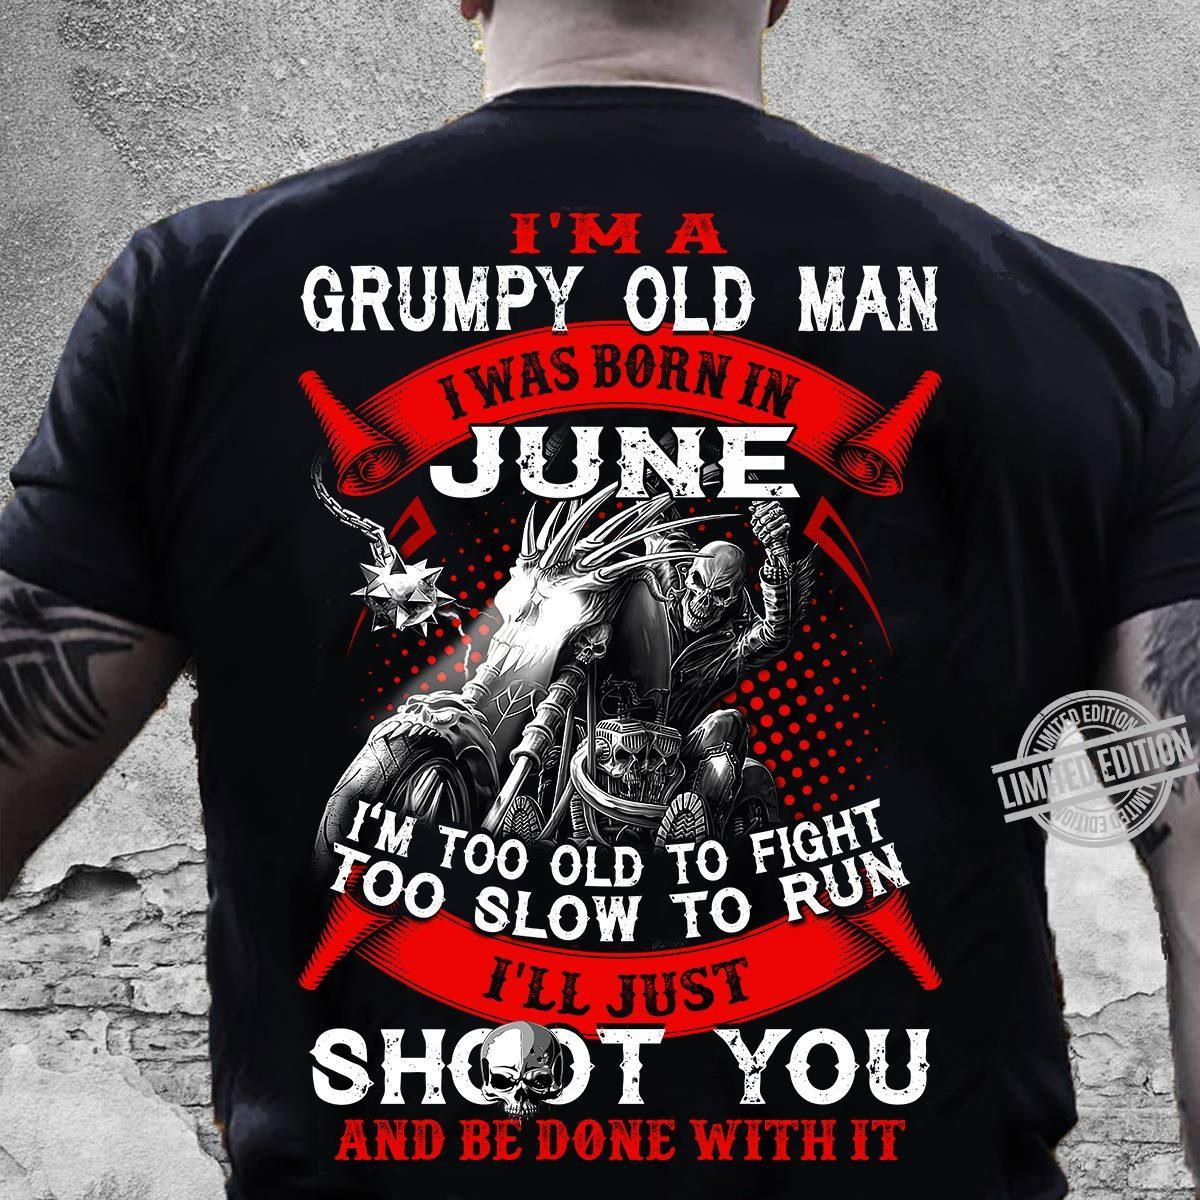 I'm A Grumpy Old Man I Was Born I June I'm Too Old To Fight Too Slow To Run I'll Just Shoot You And Be Done With It Shirt